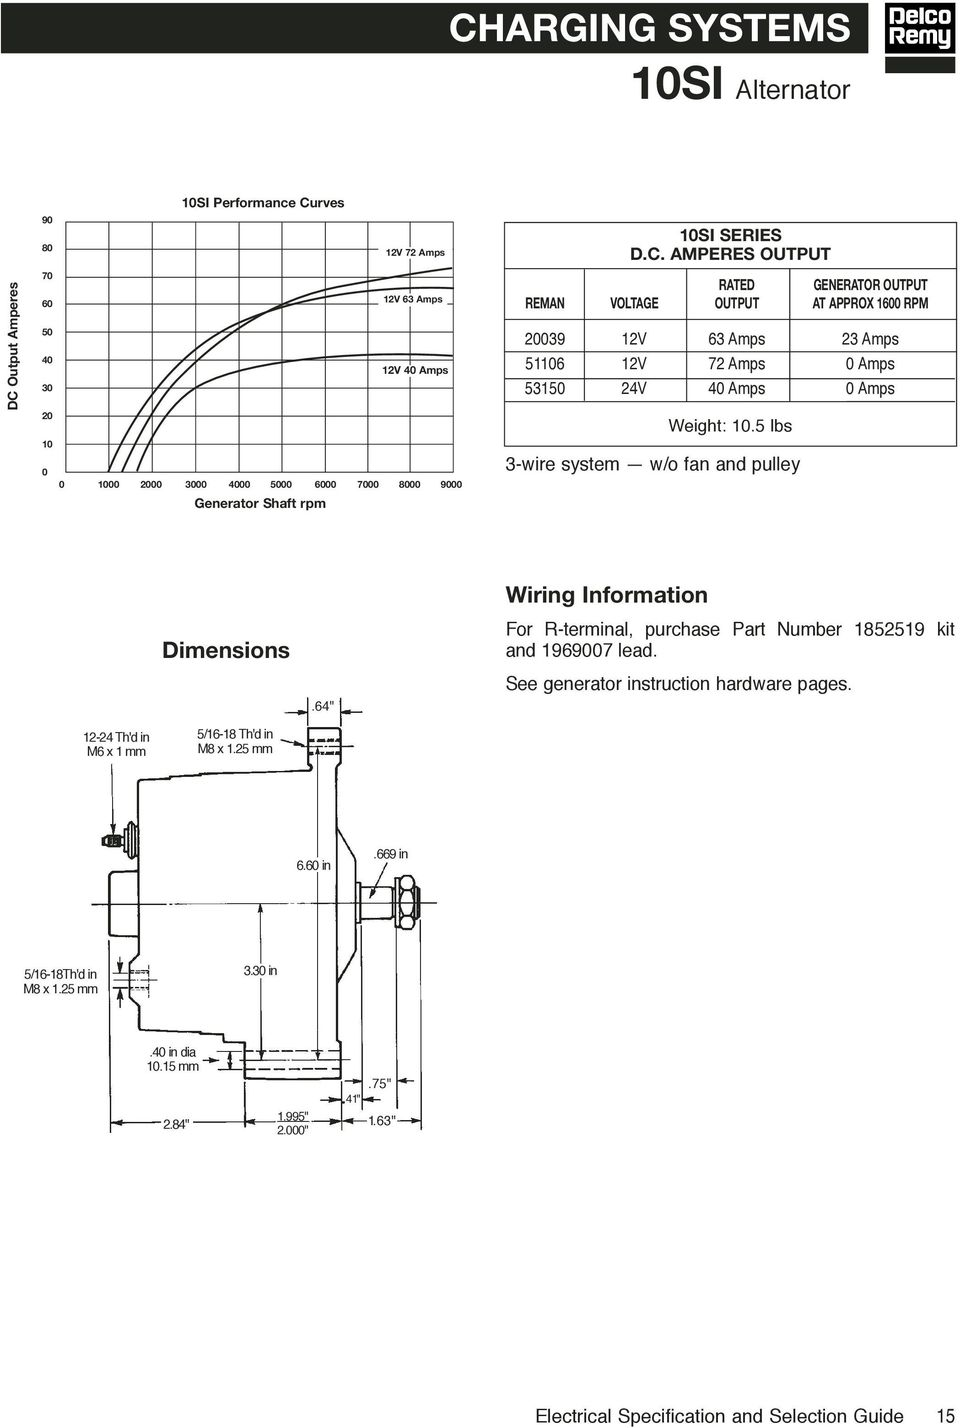 Electrical Specifications Selection Guide Pdf 24 Volt Generator Wiring Diagram Amperes Output Rated Reman Voltage At Approx 1600 Rpm 20039 12v 63 Amps